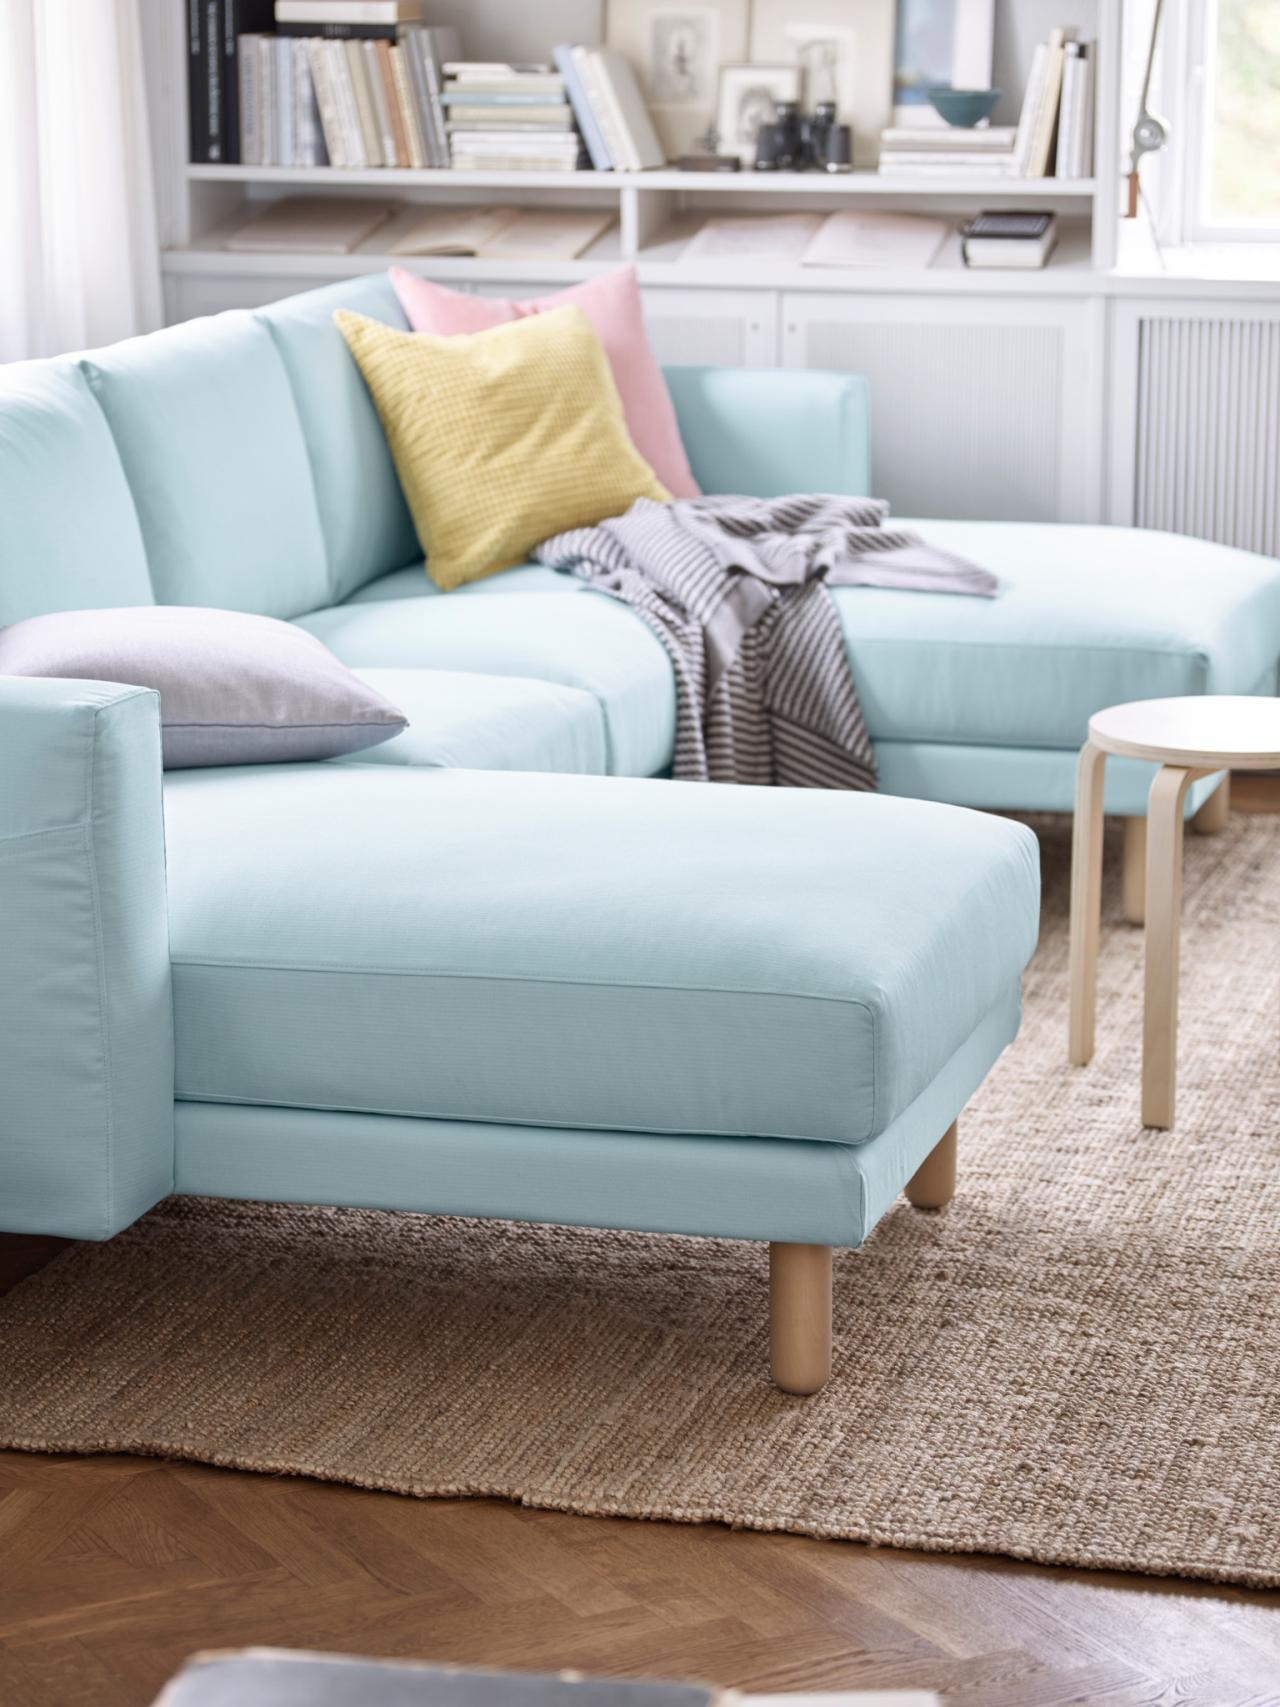 5 Apartment Sized Sofas That Are Lifesavers | Hgtv's Decorating With Sectional Small Space (Image 1 of 20)